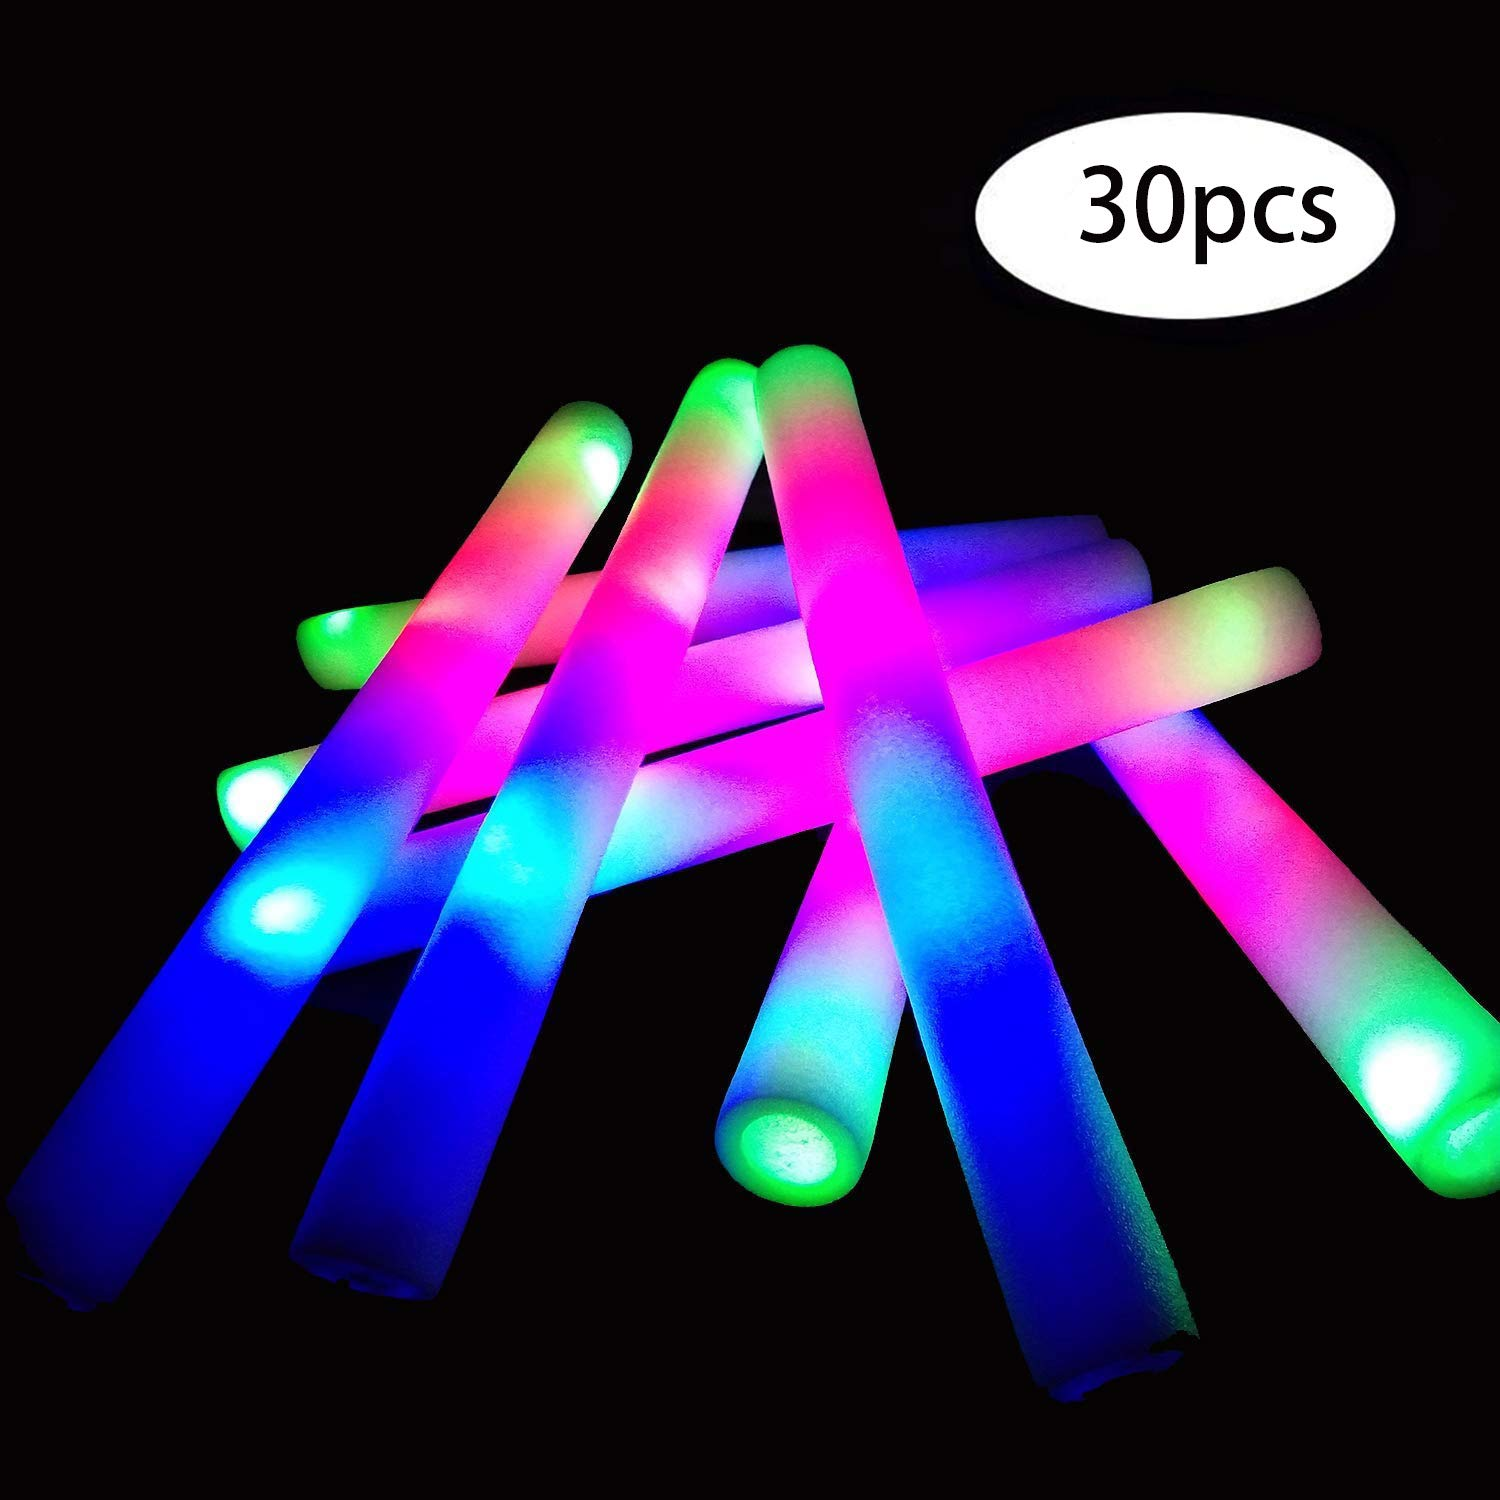 YanXi7 30 Pcs Glow Sticks, 16'' Multicolor LED Light Up Foam Sticks Baton Strobe with 3 Modes Color Changing Flashing, Light Up Toys for Party Favors Supplies Festivals Raves, Children Toy